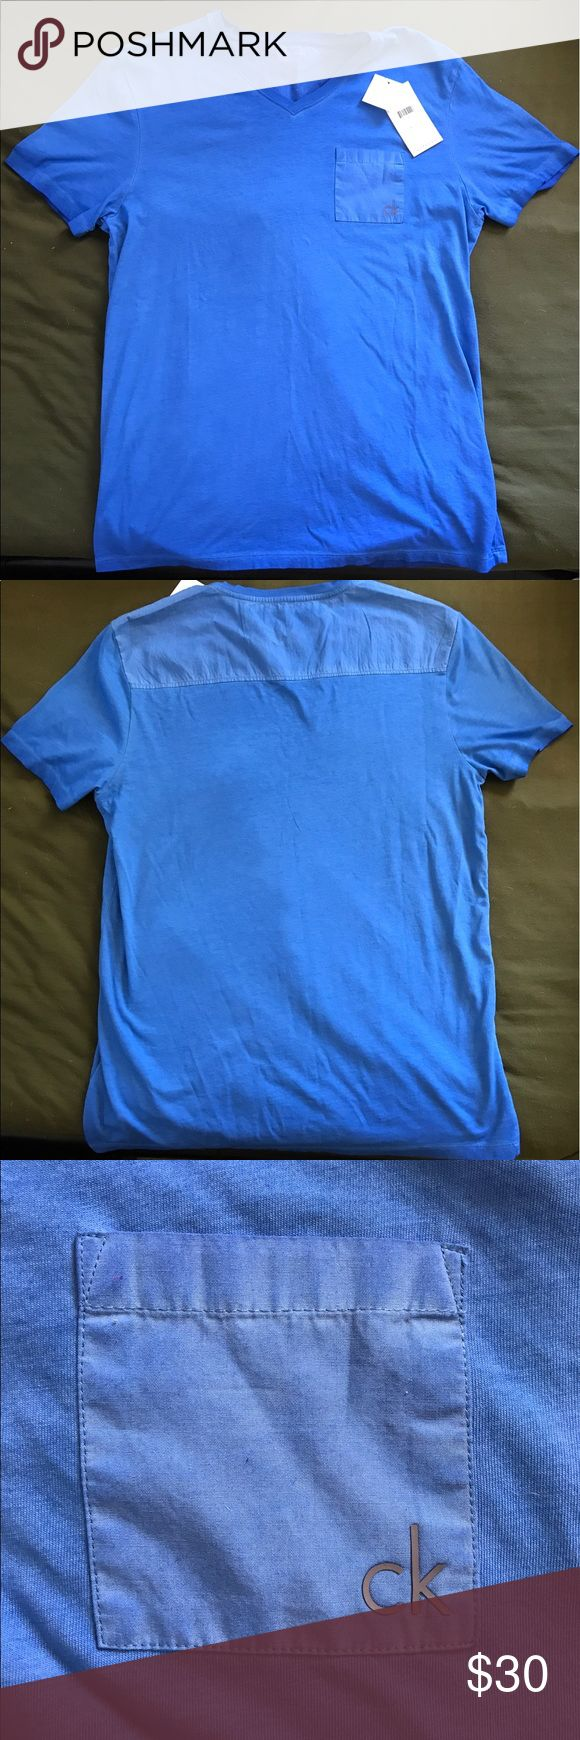 "Brand NWT Calvin Klein T Shirt This shirt is brand new with the tags still attached! A beautiful blue color, with a pocket on the left side of the chest hat has ""ck"" on it in grey. This shirt has never been worn and the price paid was $40. It is a size Medium, men's t shirt. ☺️ Calvin Klein Shirts Tees - Short Sleeve"